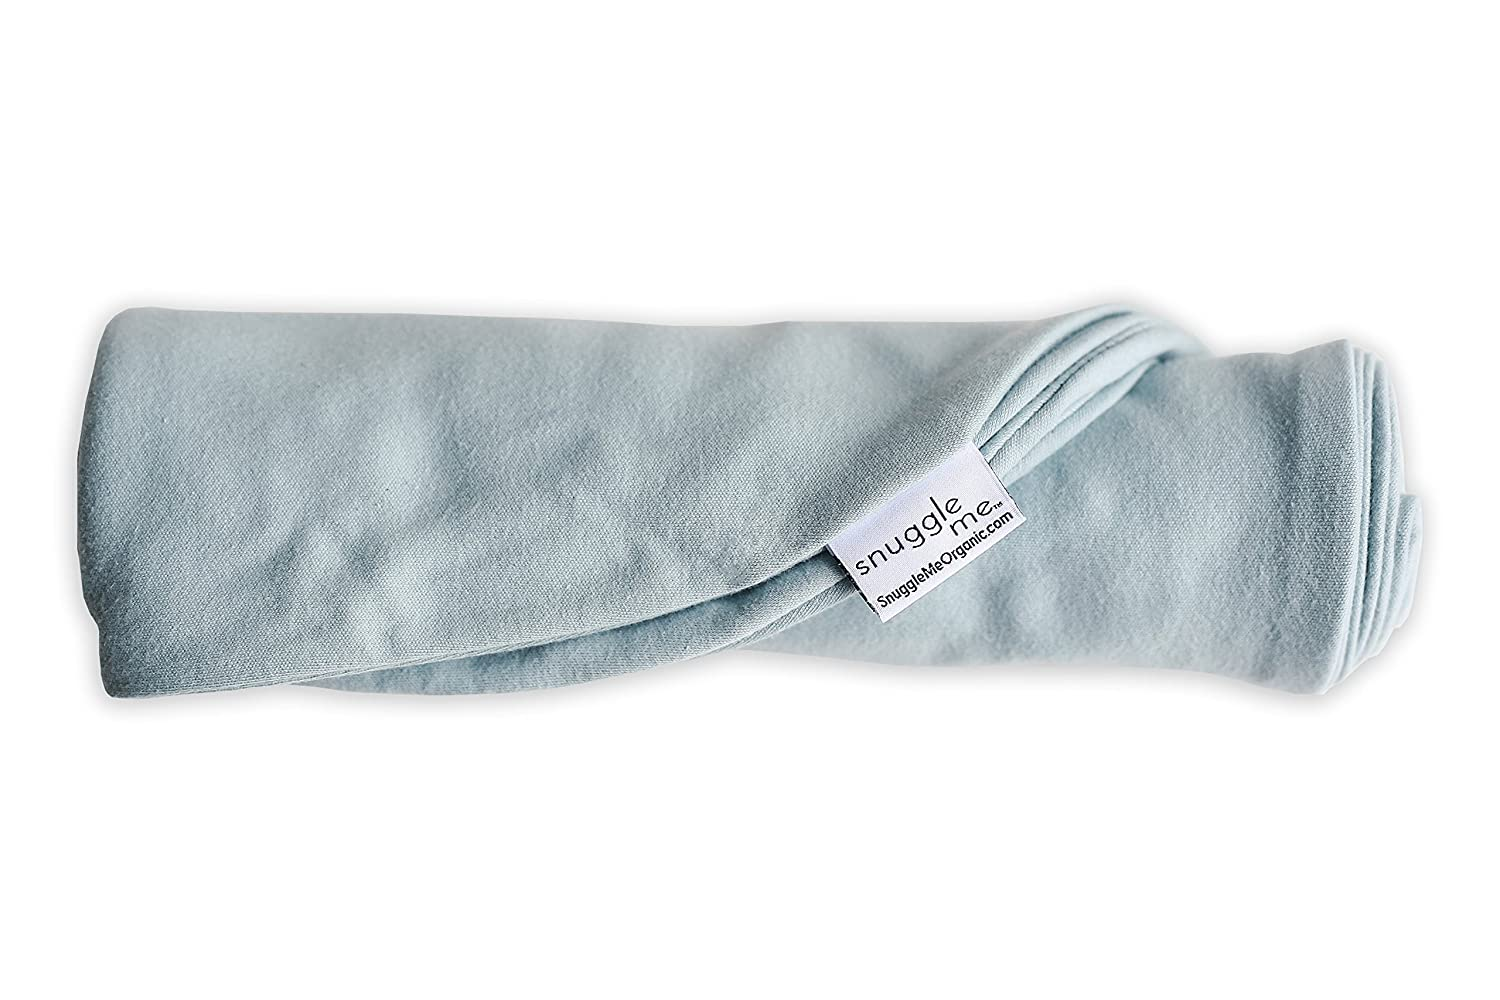 Snuggle Me Extra Organic Cotton Cover for the Snuggle Me Infant Padded Loungers with Center Sling, Dreams on Parade 2303